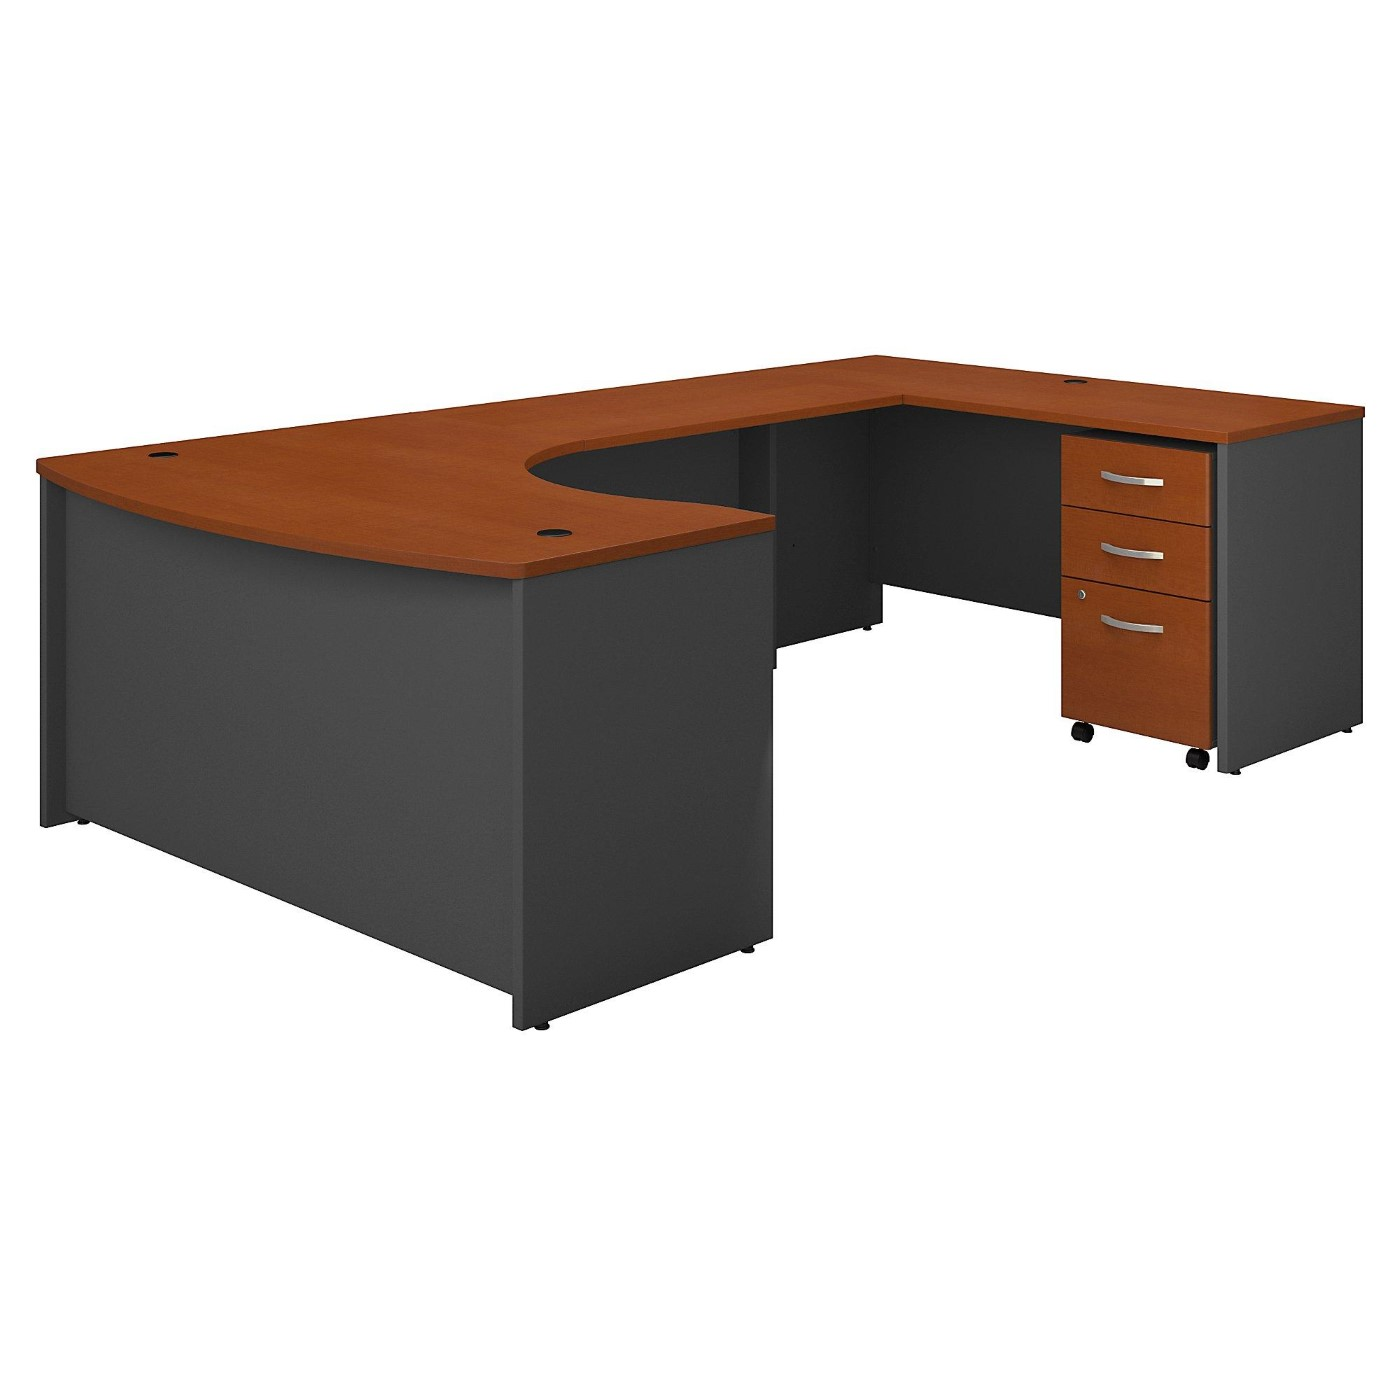 BUSH BUSINESS FURNITURE SERIES C 60W LEFT HANDED BOW FRONT U SHAPED DESK WITH MOBILE FILE CABINET. FREE SHIPPING  VIDEO BELOW.  SALE DEDUCT 10% MORE ENTER '10percent' IN COUPON CODE BOX WHILE CHECKING OUT.